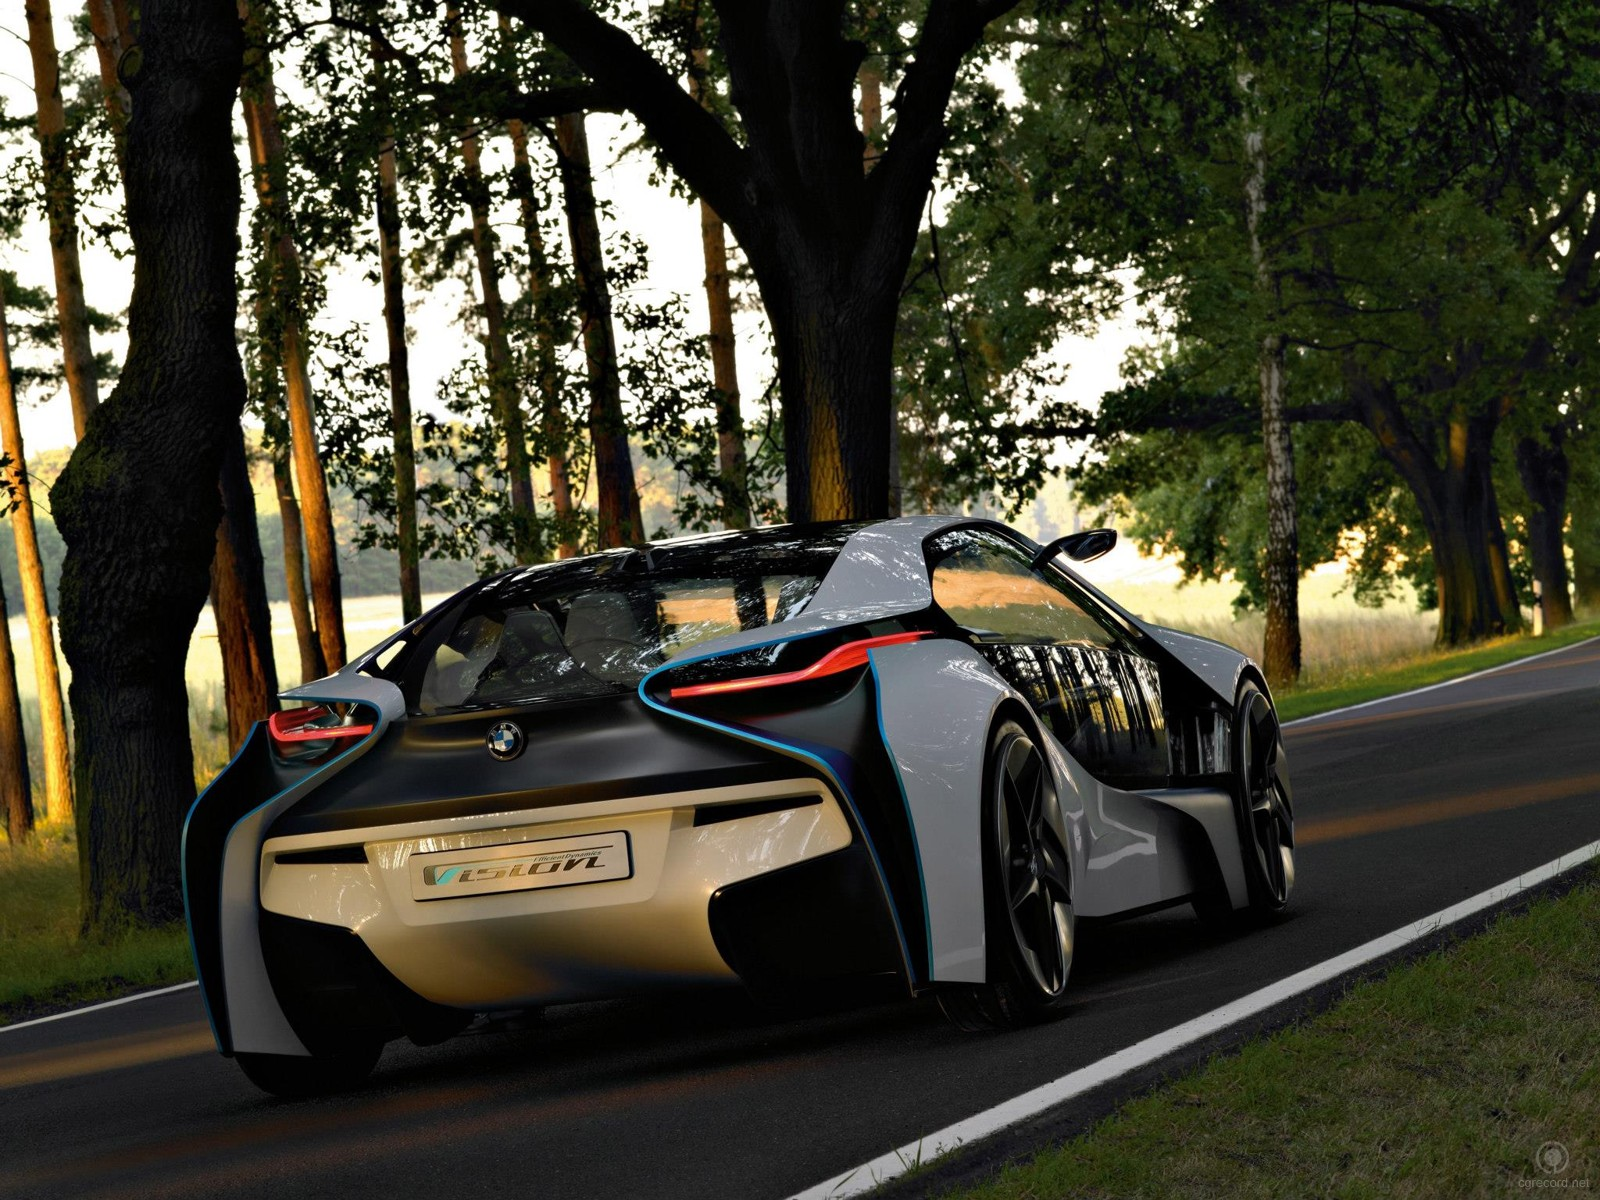 BMW Vision EfficientDynamicsi_cgrecord-net714